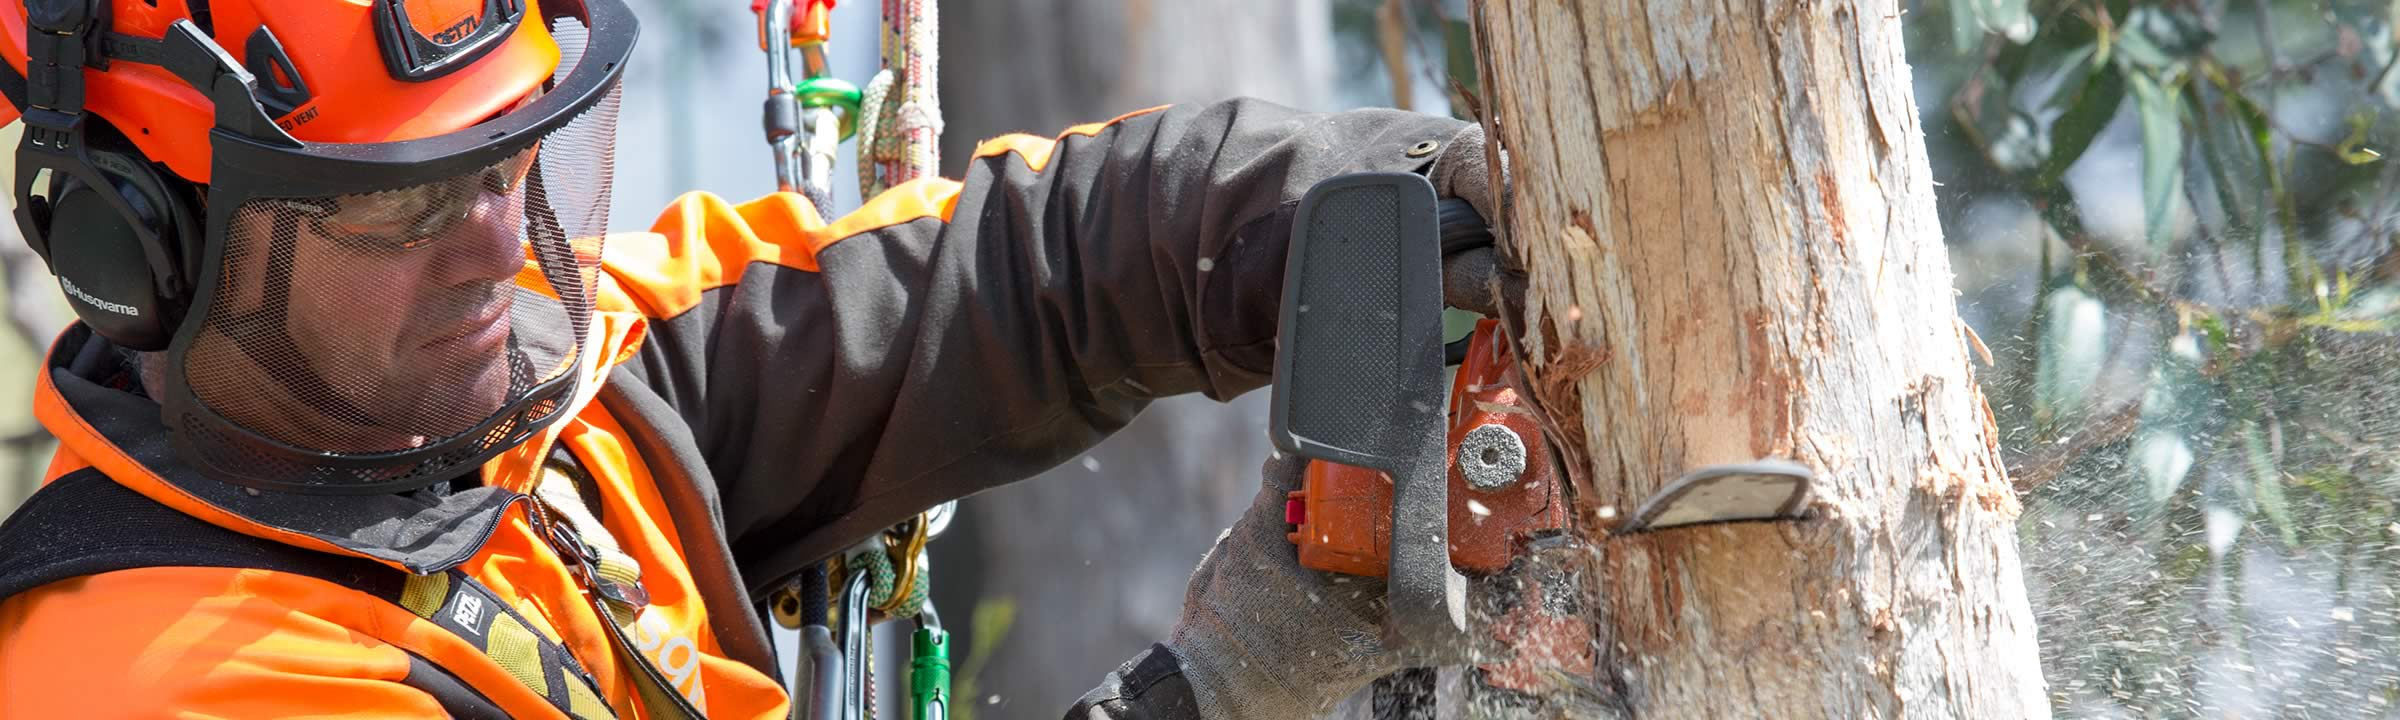 Arborist removing tree branch with chainsaw.